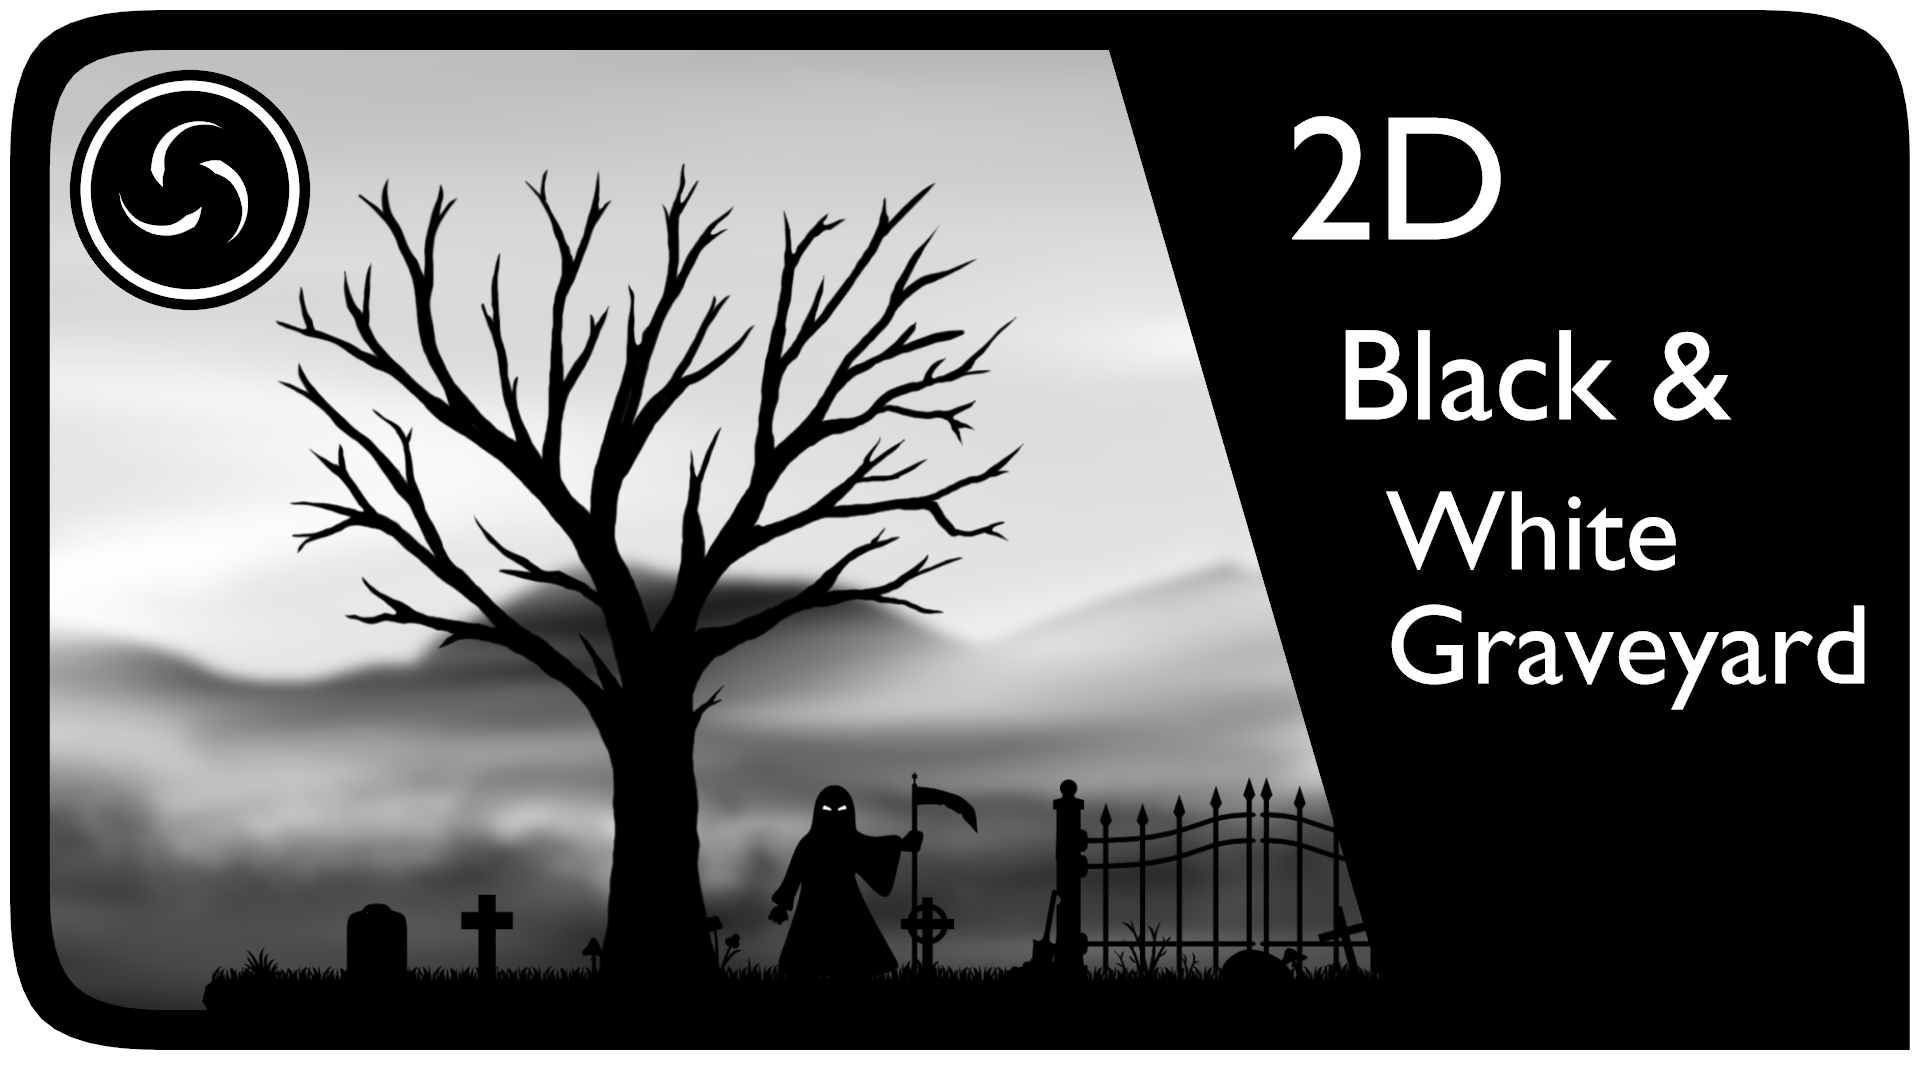 2D Black & White Graveyard